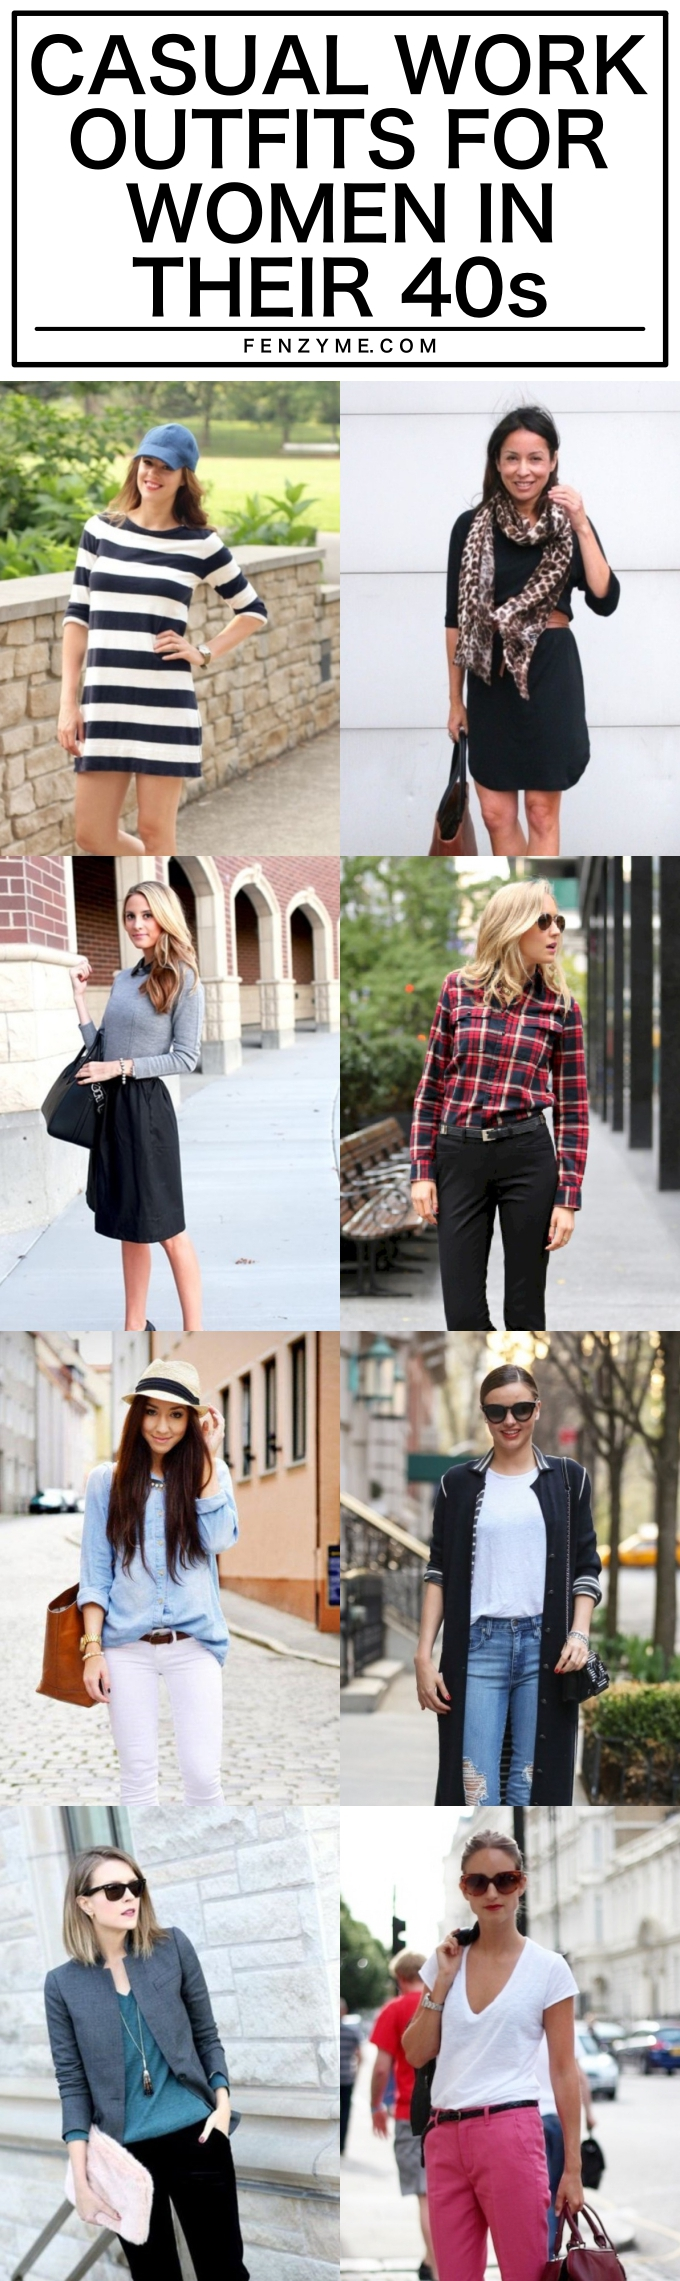 CASUAL WORK OUTFITS FOR WOMEN IN THEIR 40S